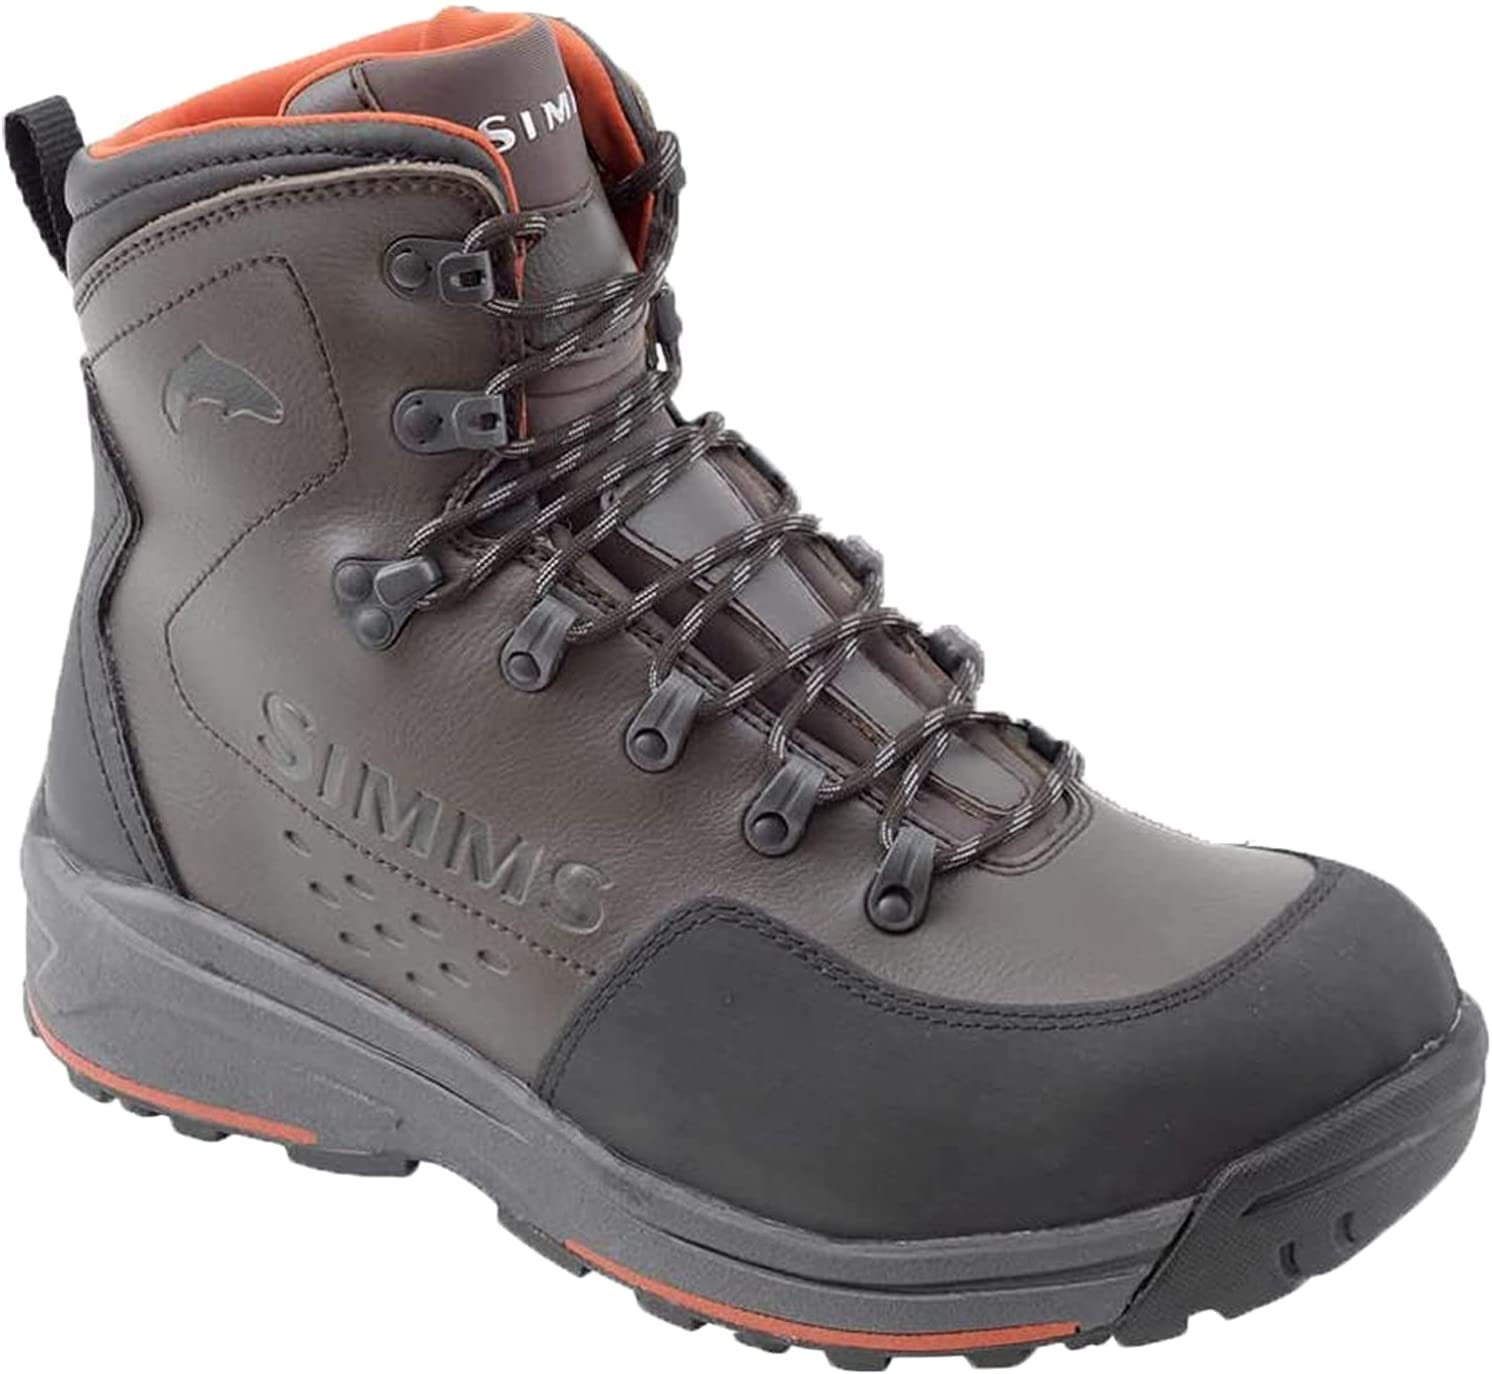 Simms Freestone Boots - Best Rocky wader boots for hiking